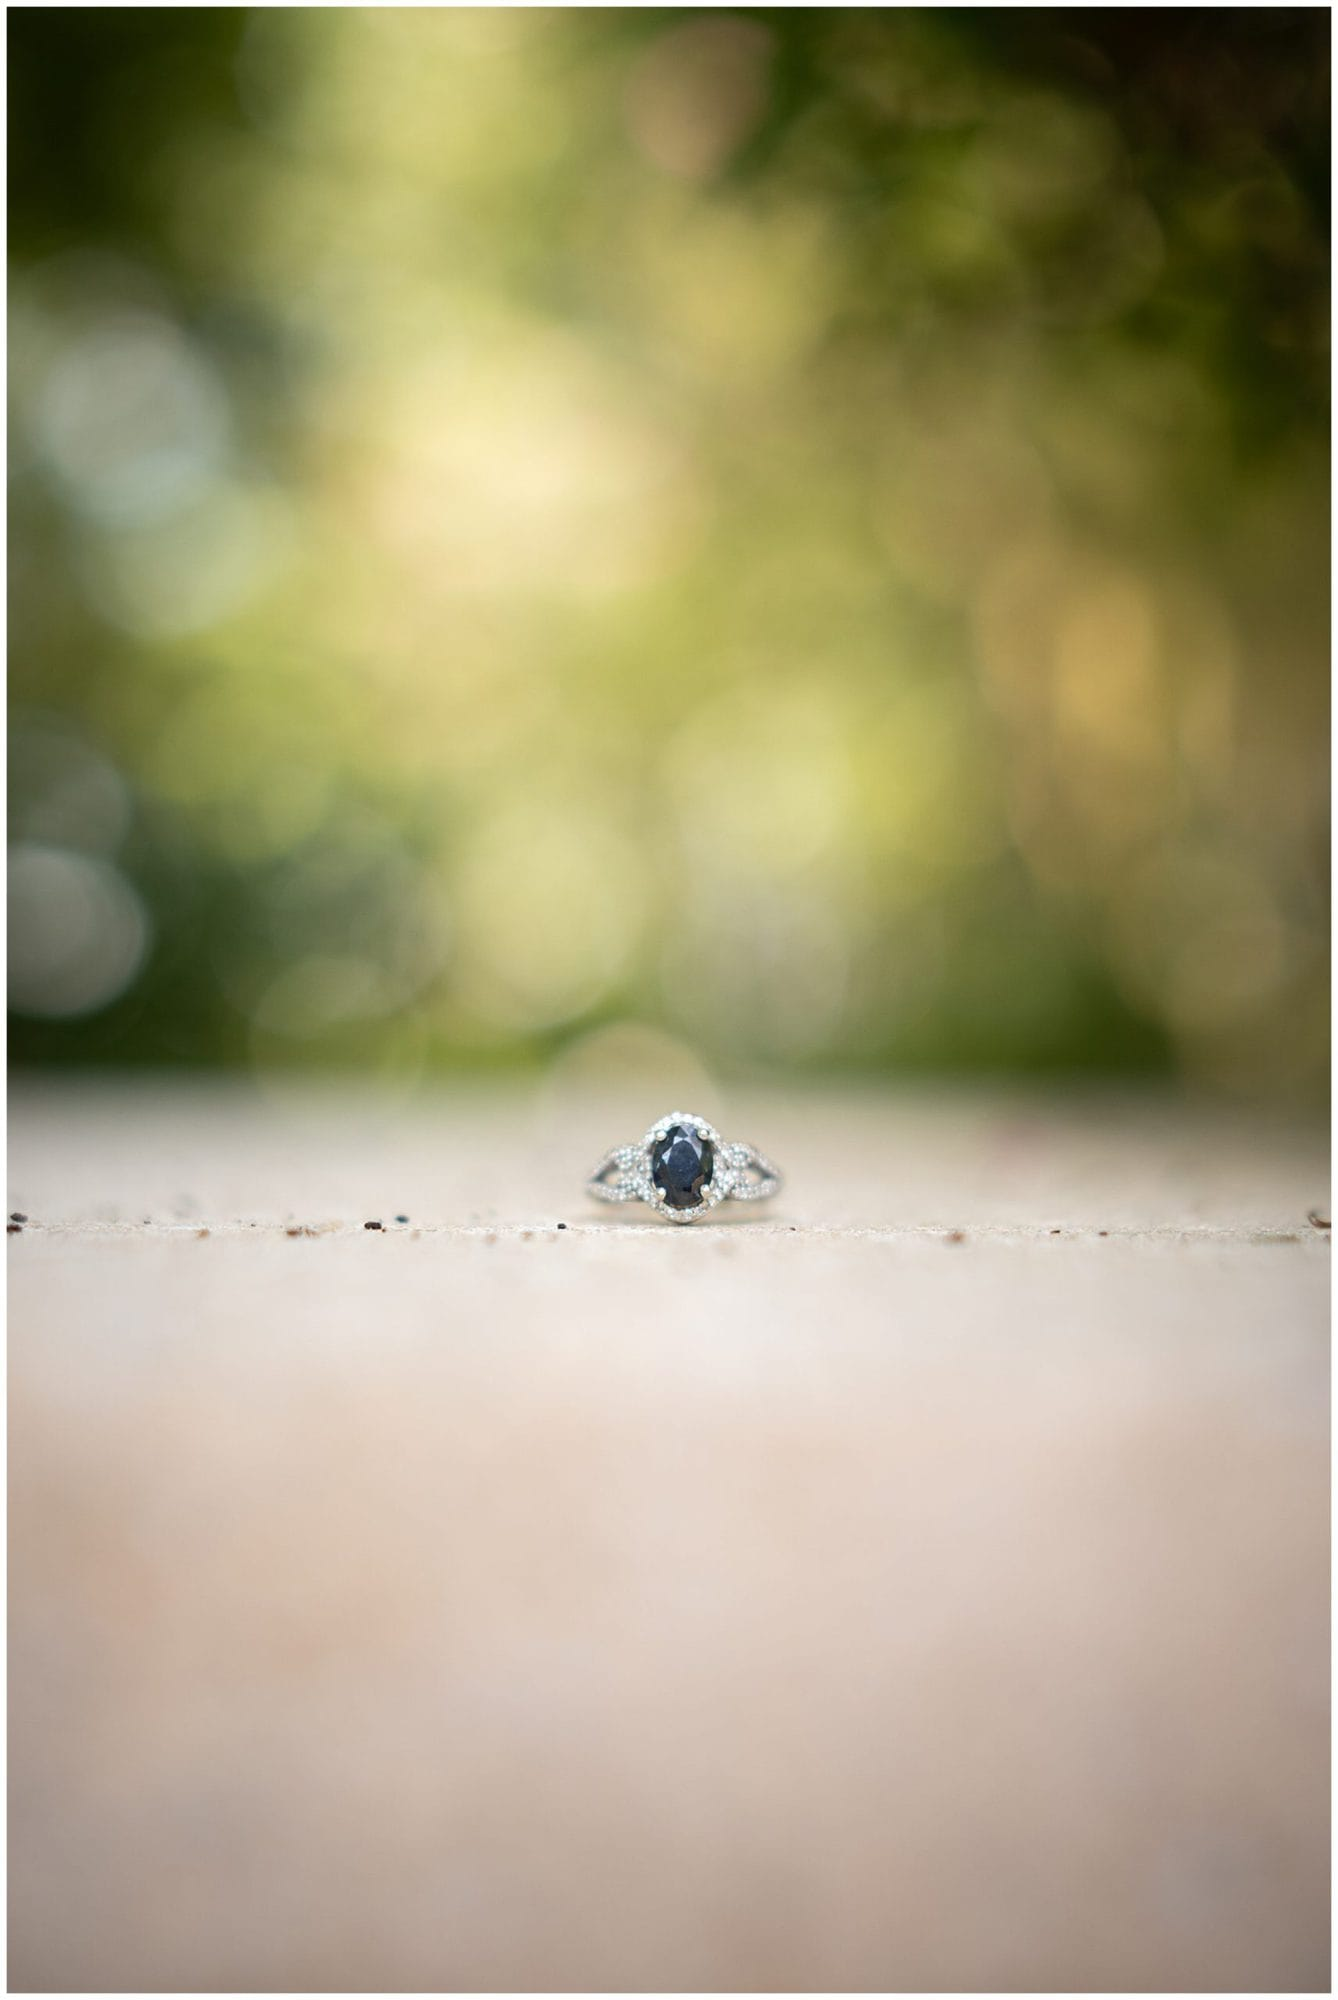 sapphire engagement ring at Windrush gardens